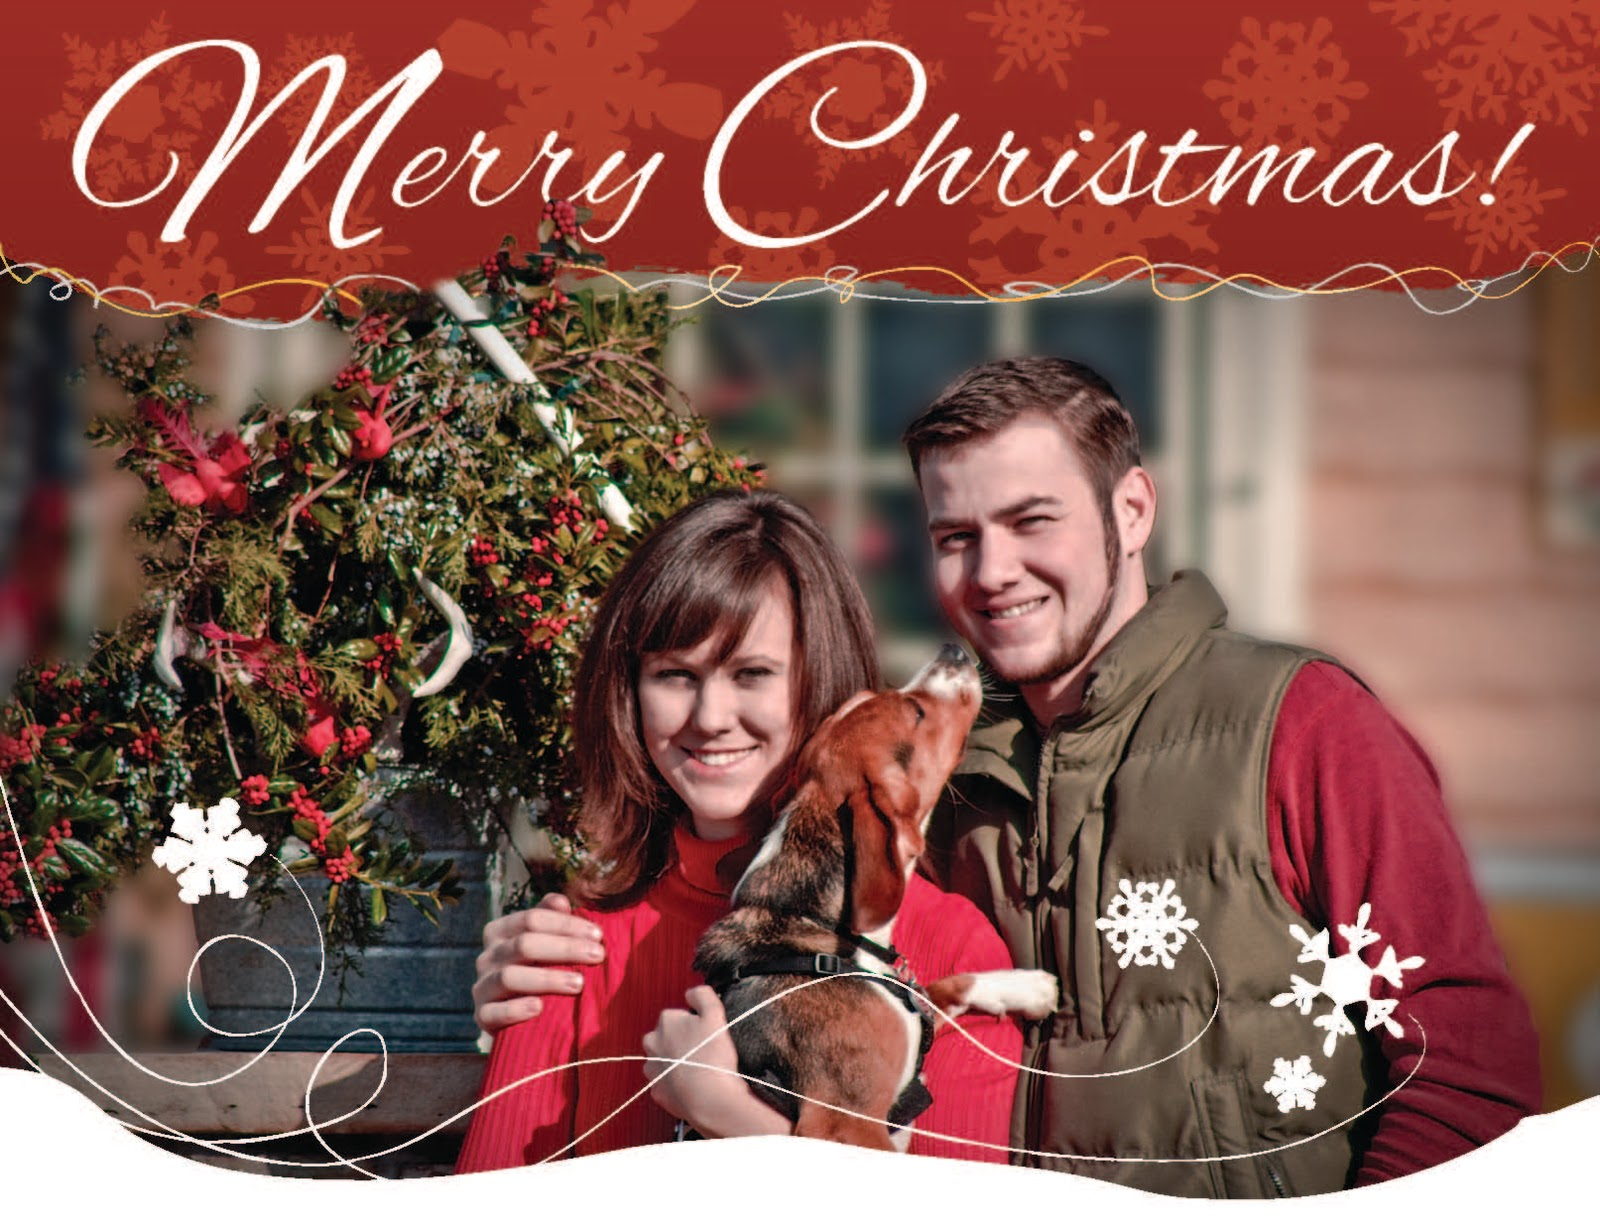 December 2010 the life not my own as this is our first ever christmas card as a new family i would like to start it off by saying that i have truly been blessedthis year more than ever kristyandbryce Images